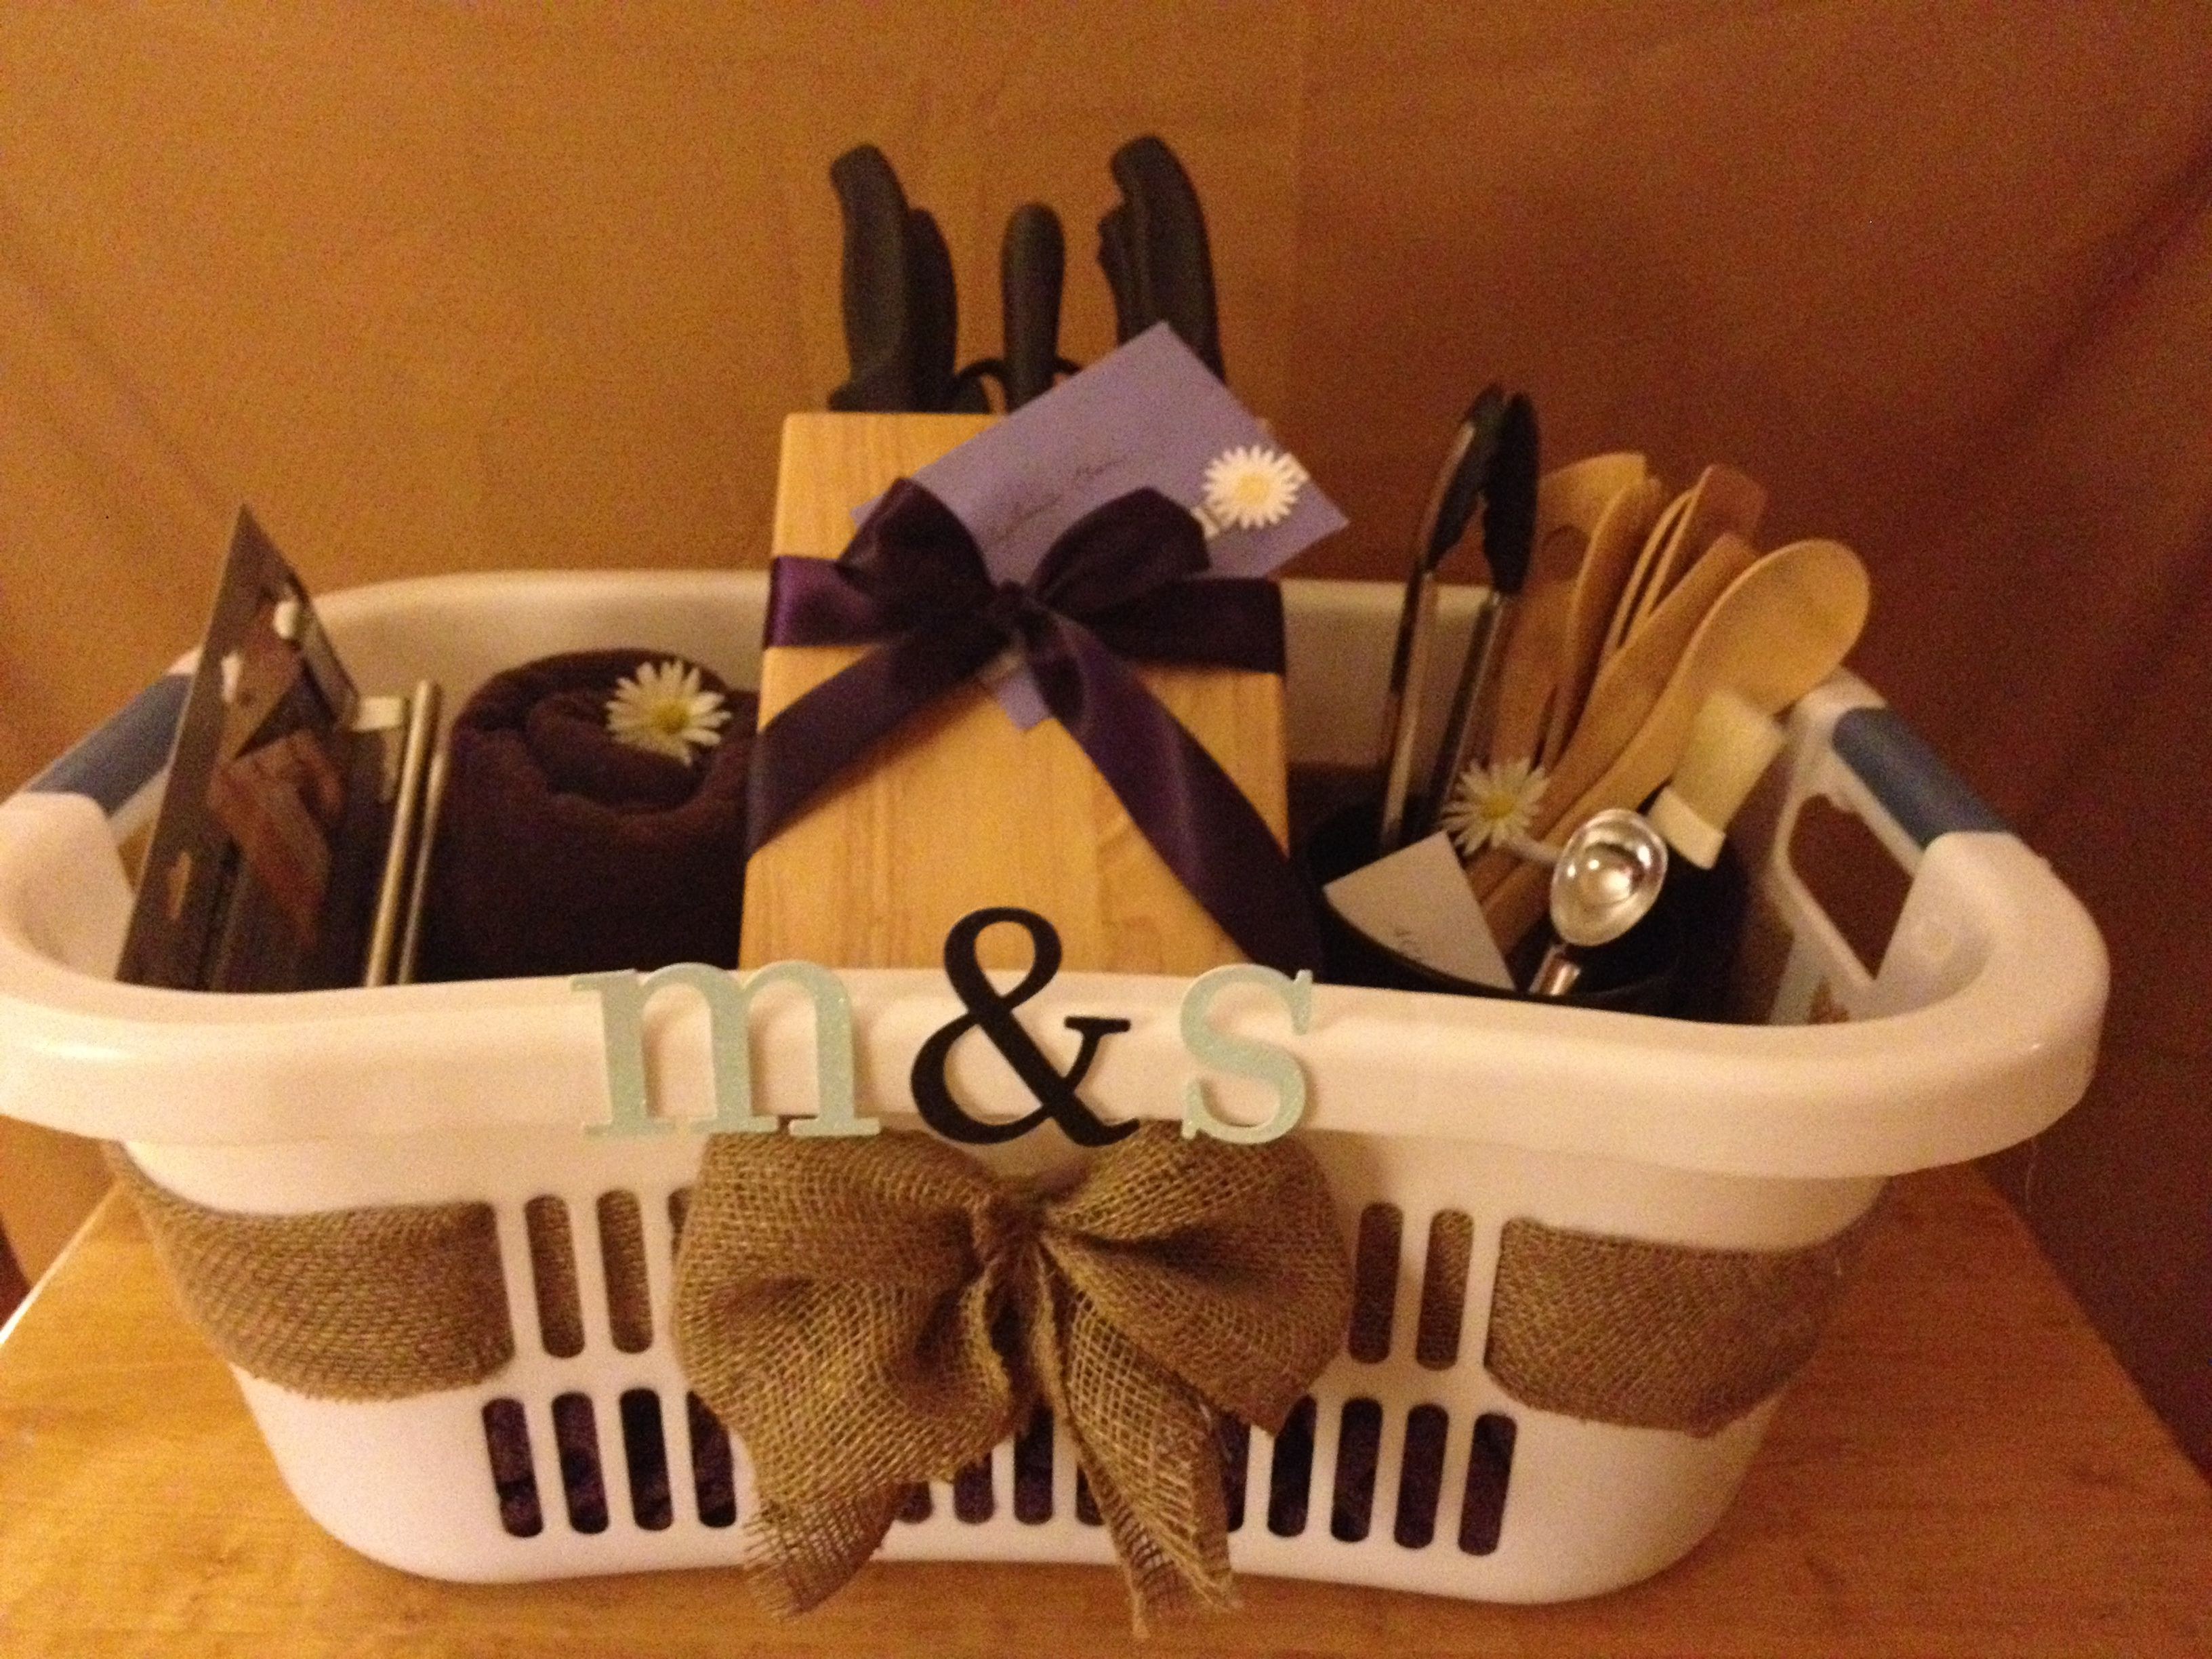 Best 25 Wedding Stress Ideas On Pinterest: Best 25+ Wedding Gift Baskets Ideas On Pinterest